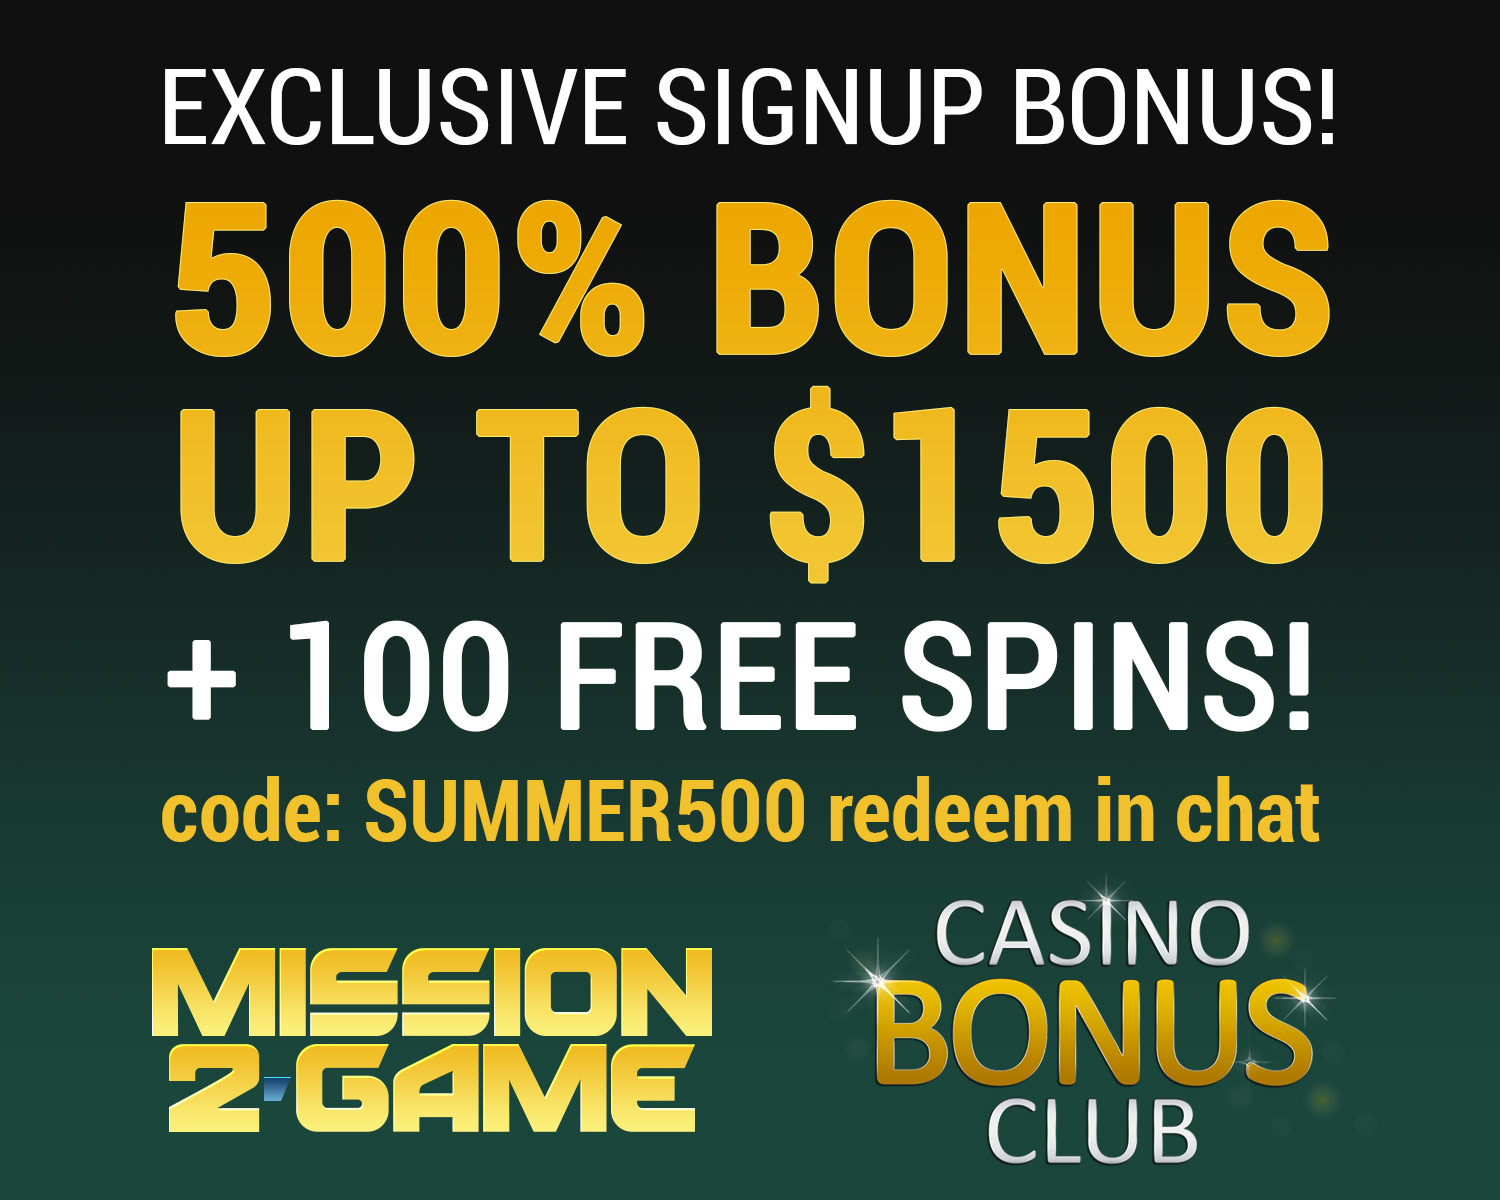 club gold casino bonus code